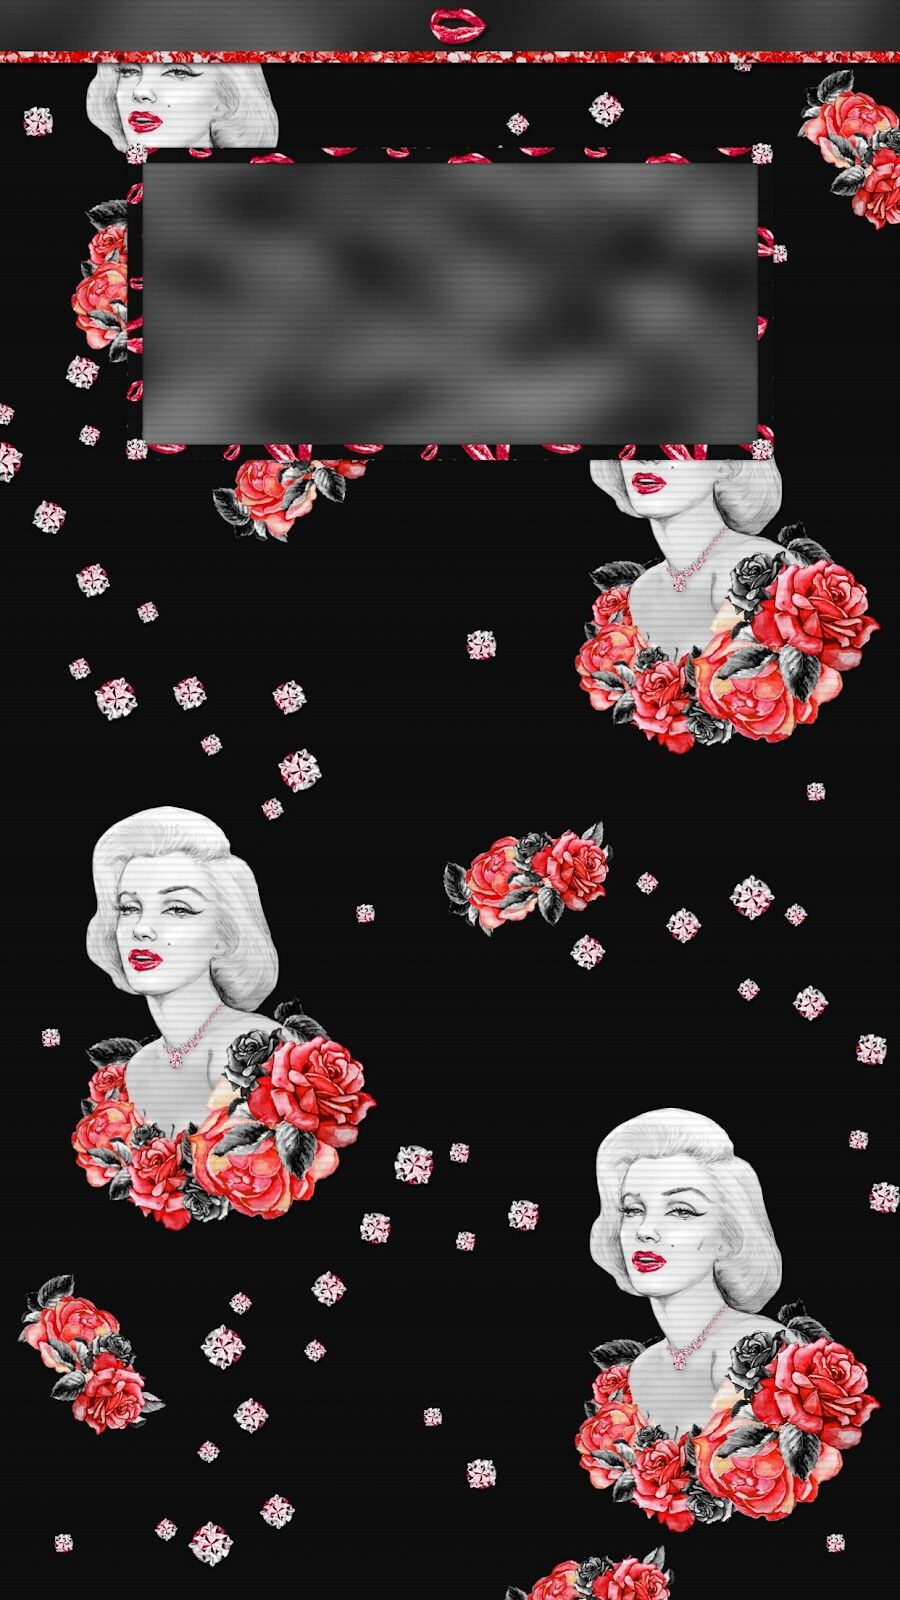 marilyn monroe home screens/lock screen tee's iscreen creations